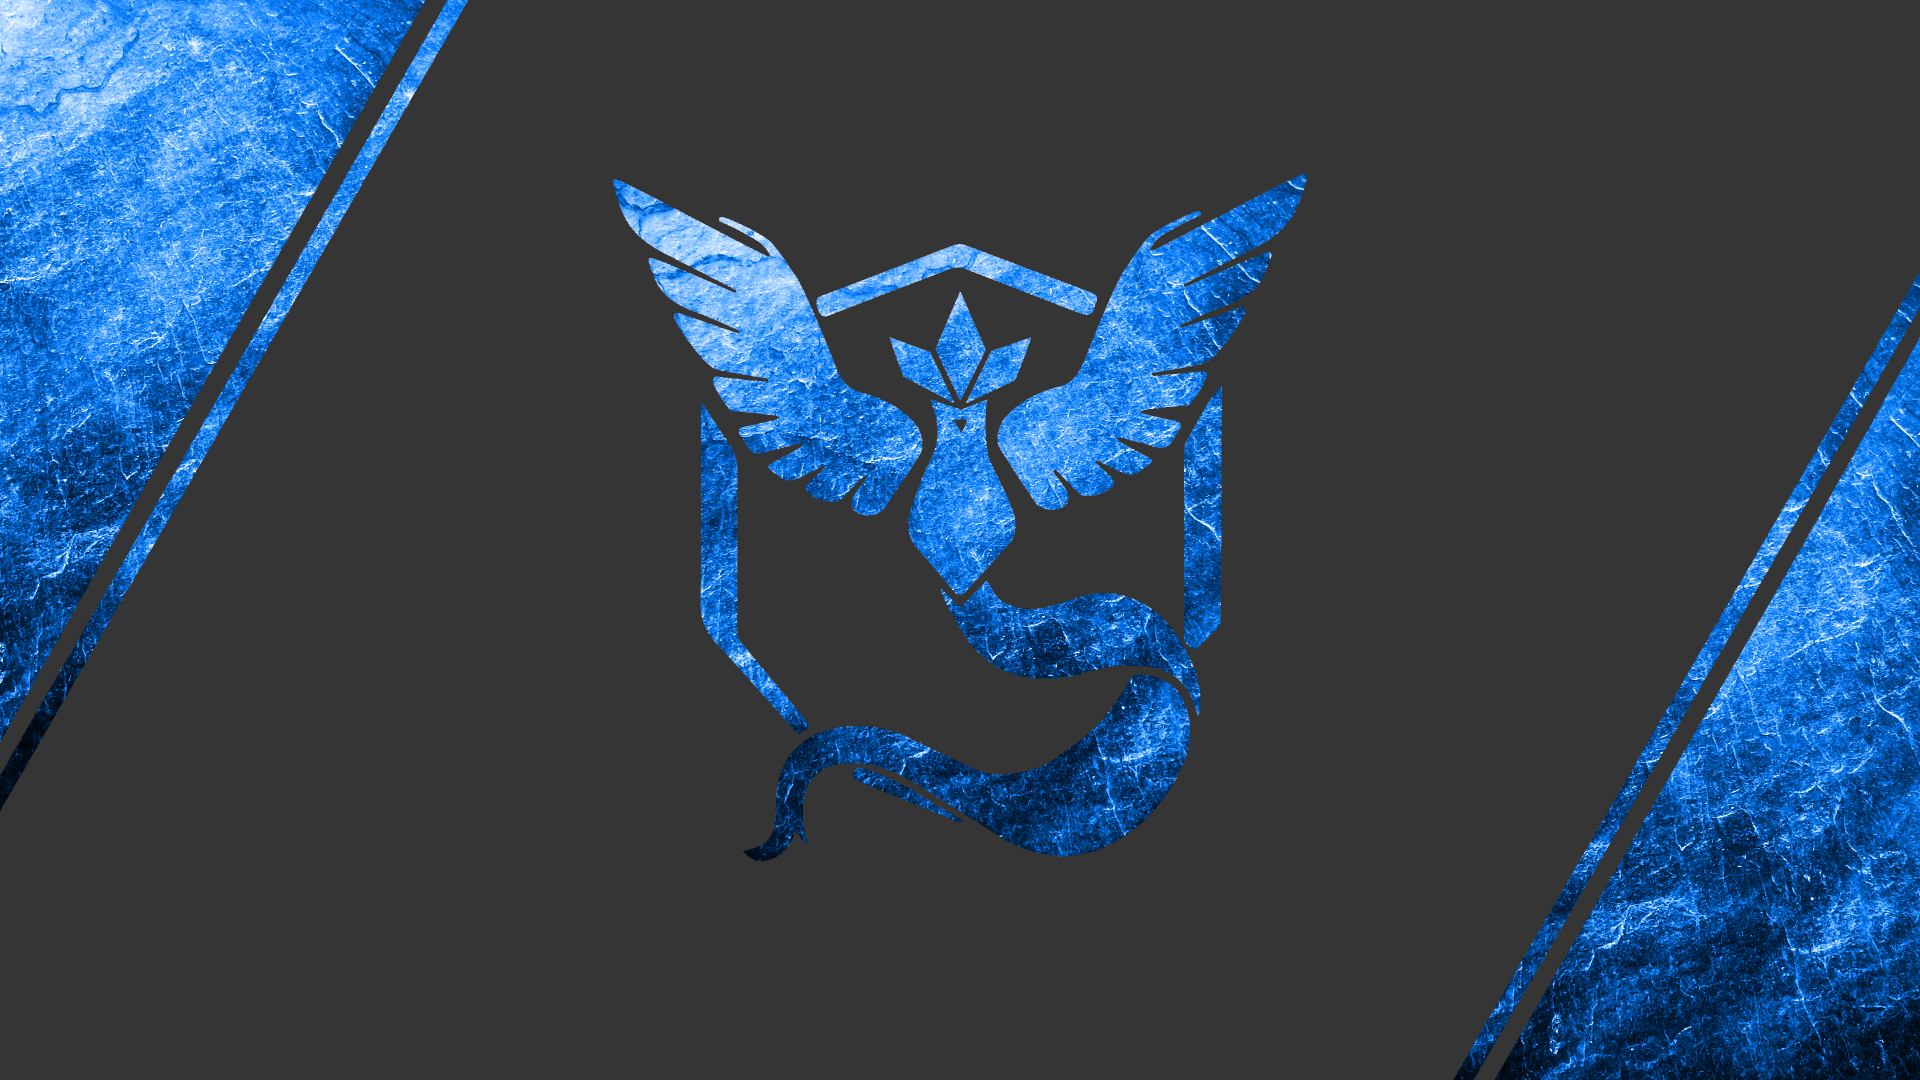 Video Game - Pokemon GO  Pokémon Team Mystic Articuno (Pokémon) Wallpaper